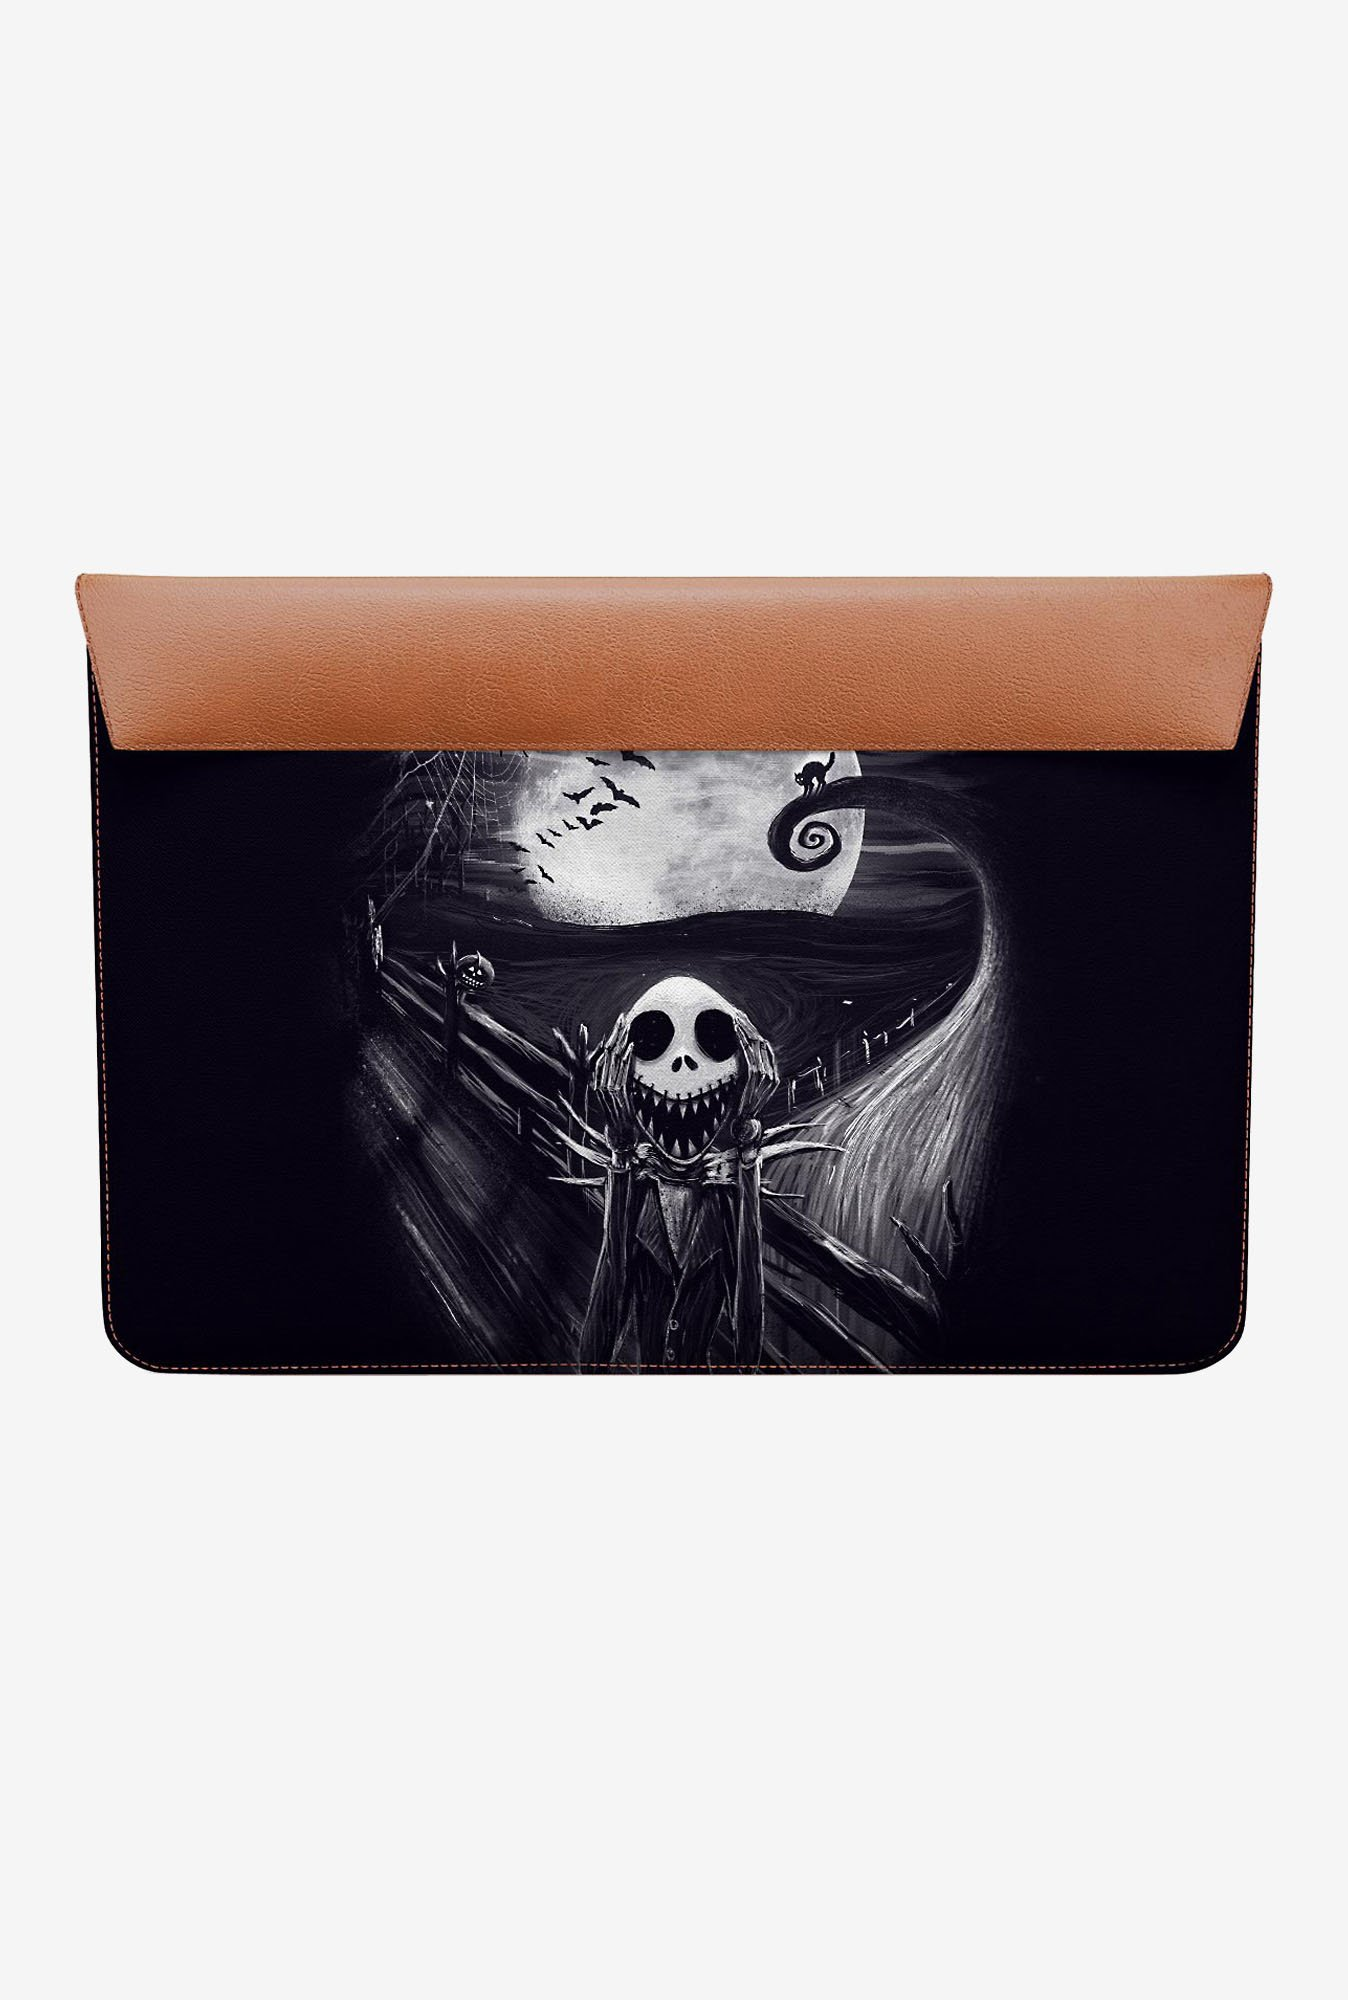 DailyObjects Scream Before MacBook Pro 15 Envelope Sleeve